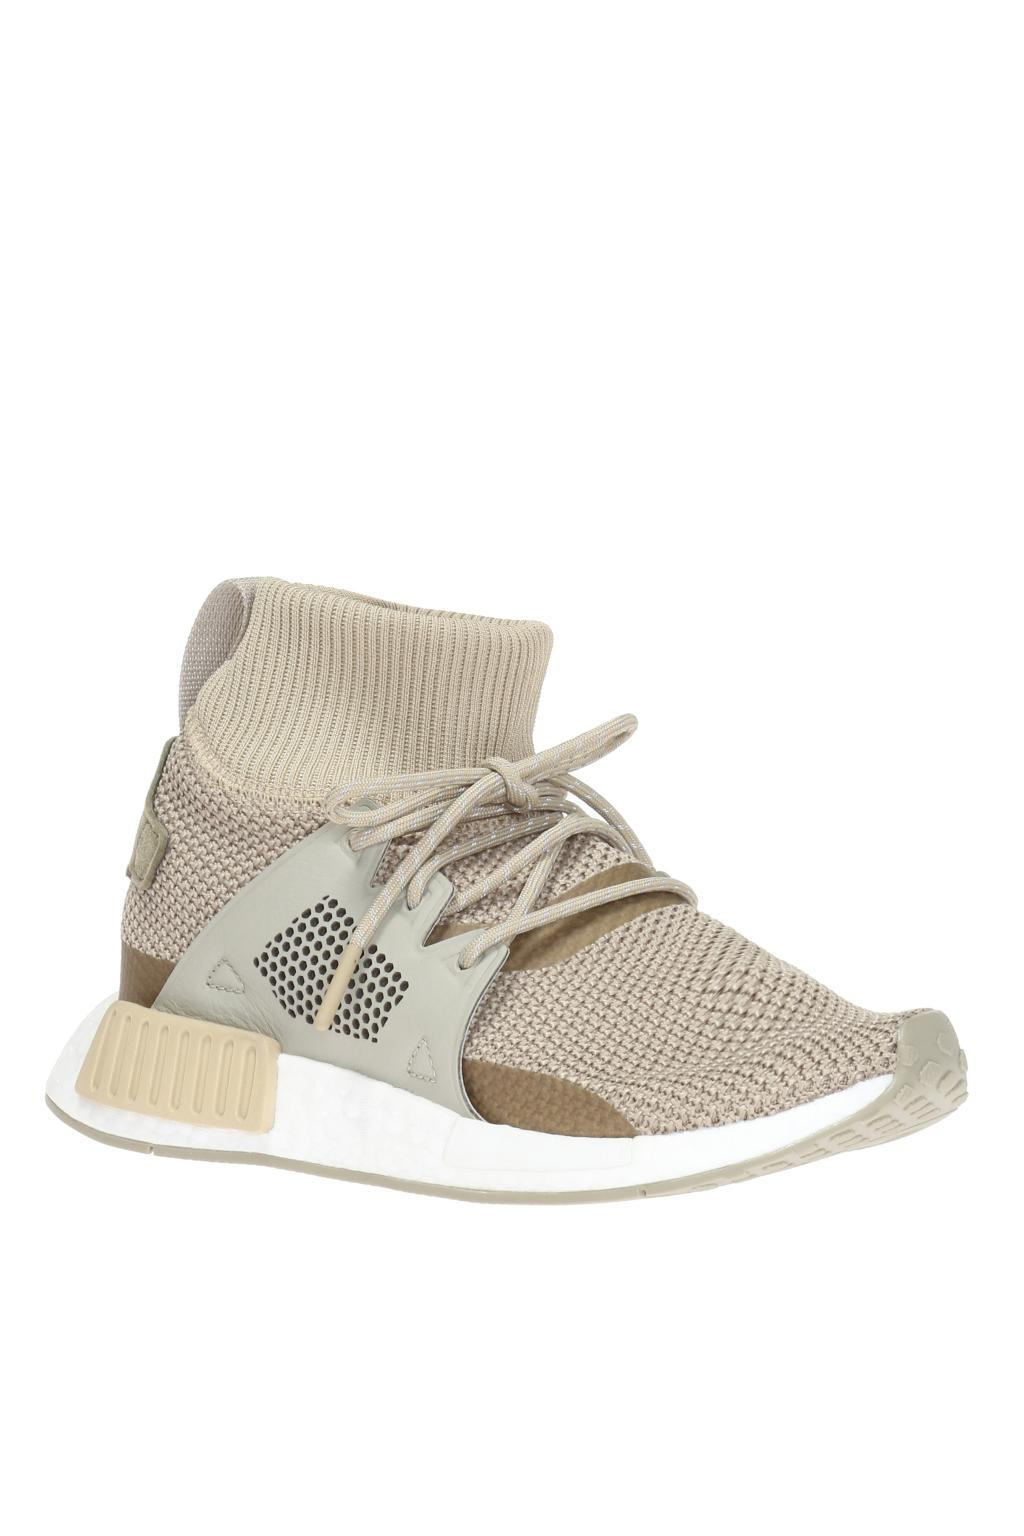 adidas Originals Leather 'nmd Xr1 Boost' Sneakers in Natural